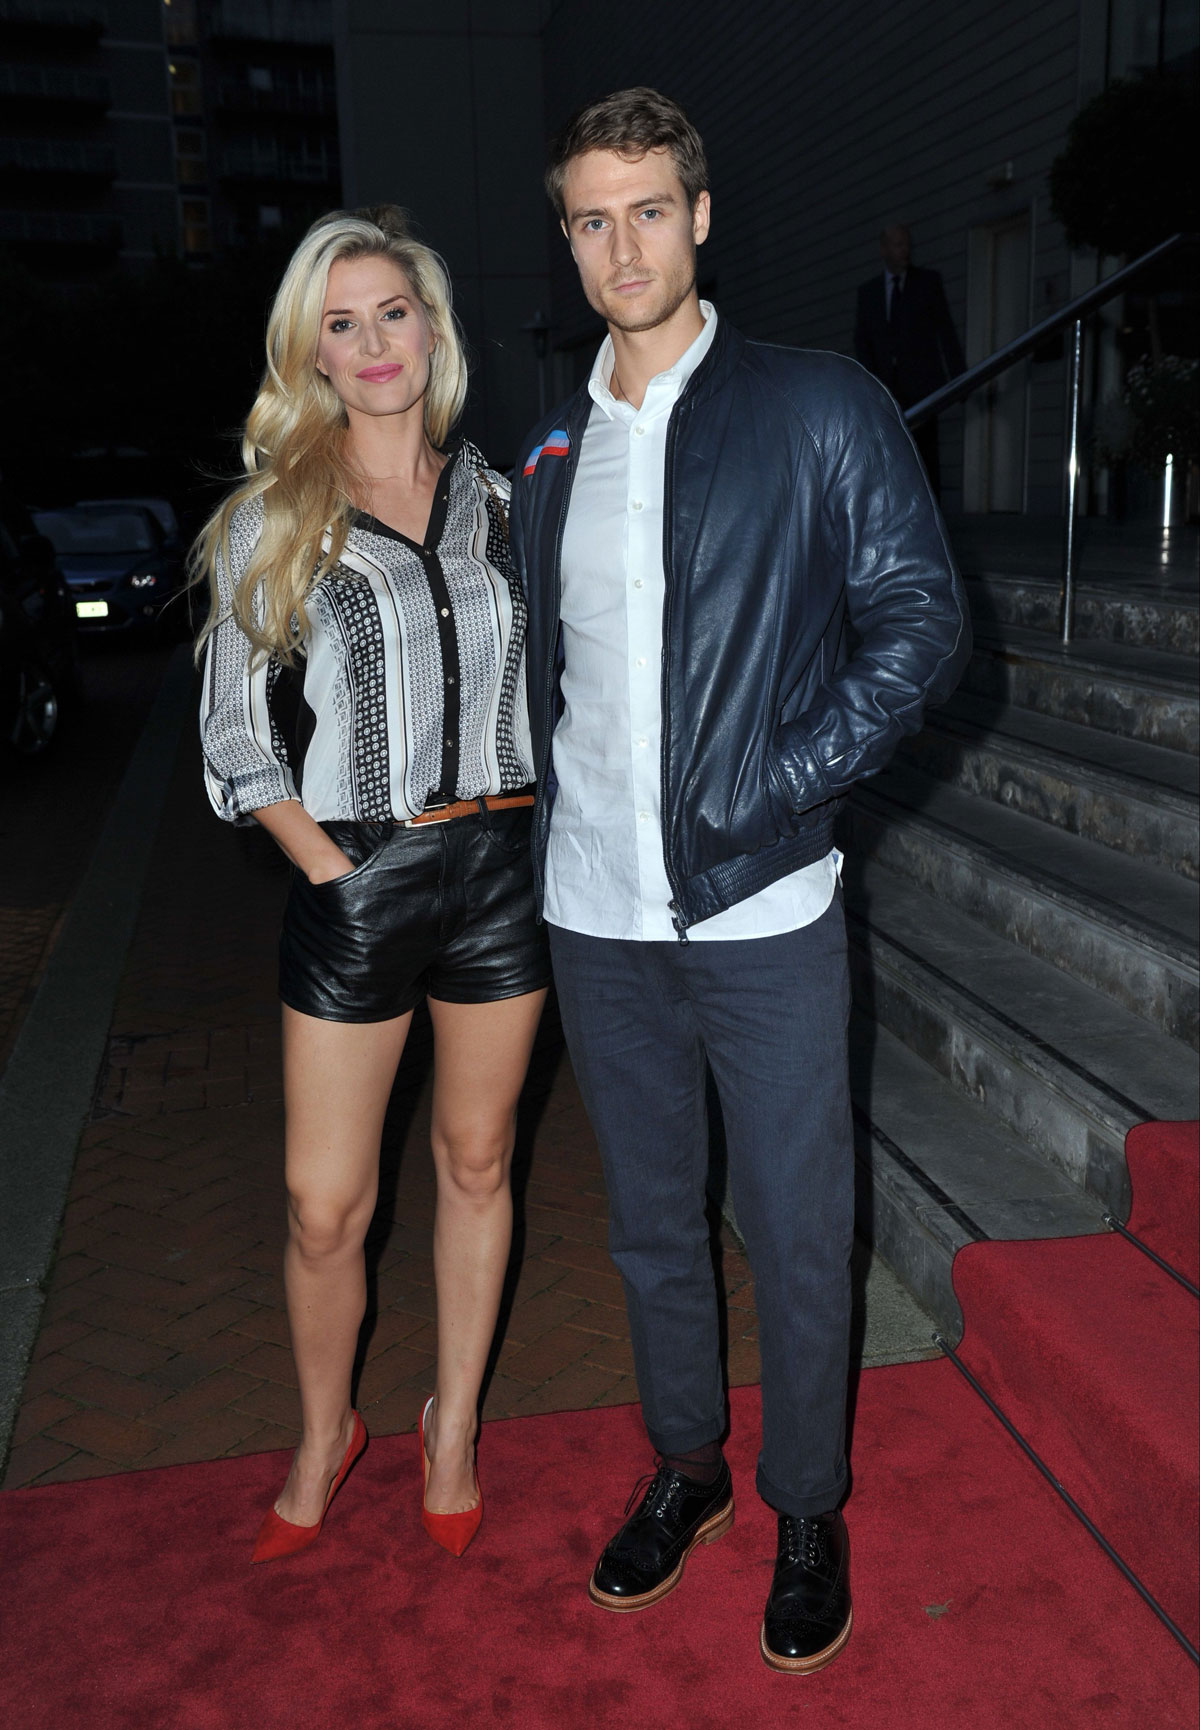 Sarah Jayne Dunn attends MEN Diary Party in Manchester